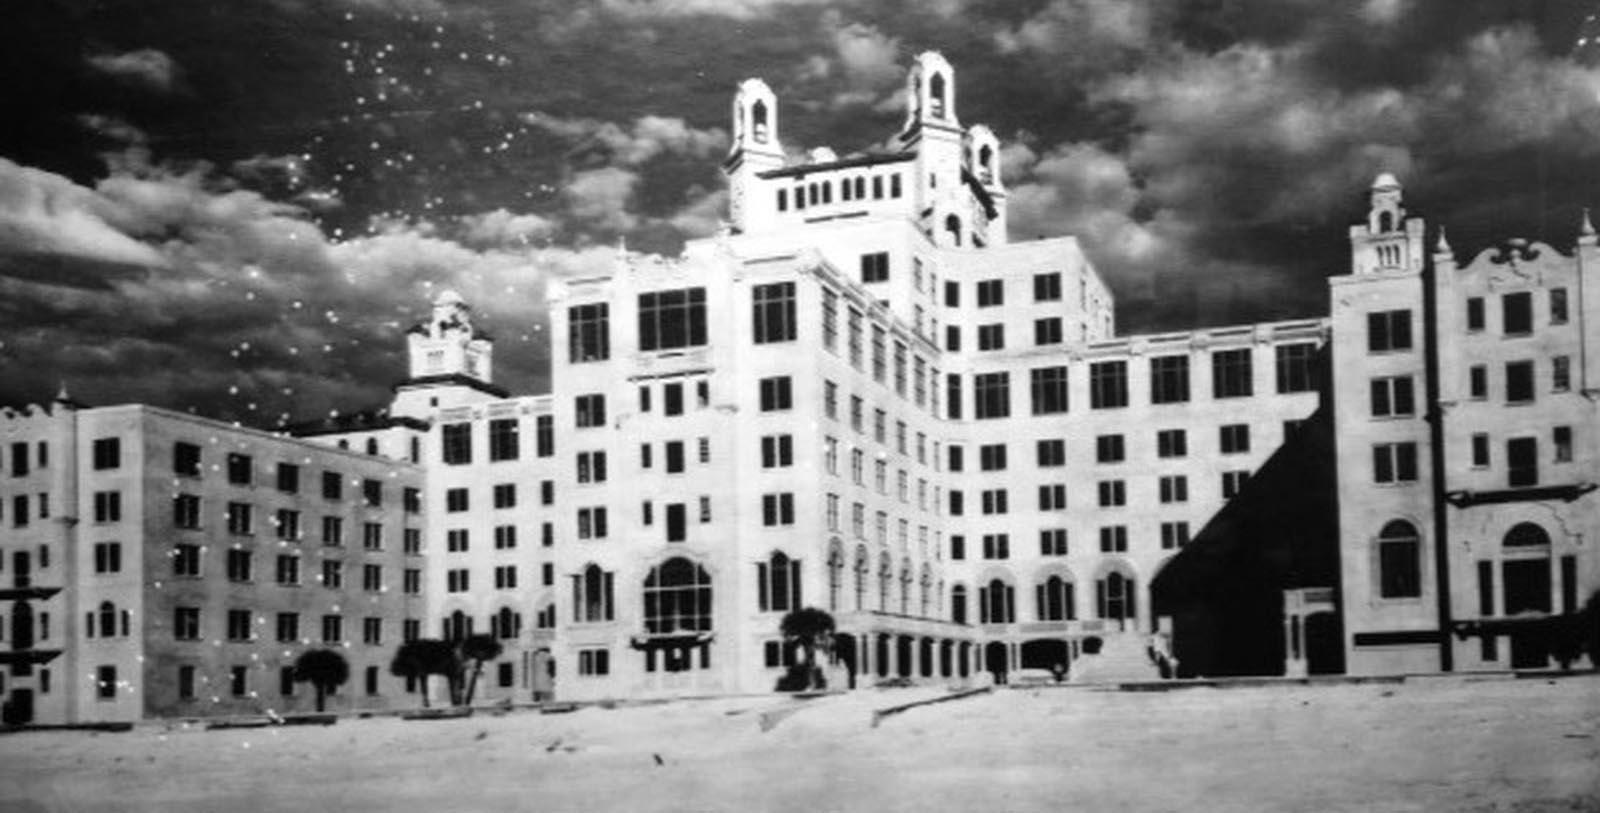 Historic Exterior Image of The Don CeSar, 1928, Member of Historic Hotels of America, in St. Petersburg, Florida, Discover